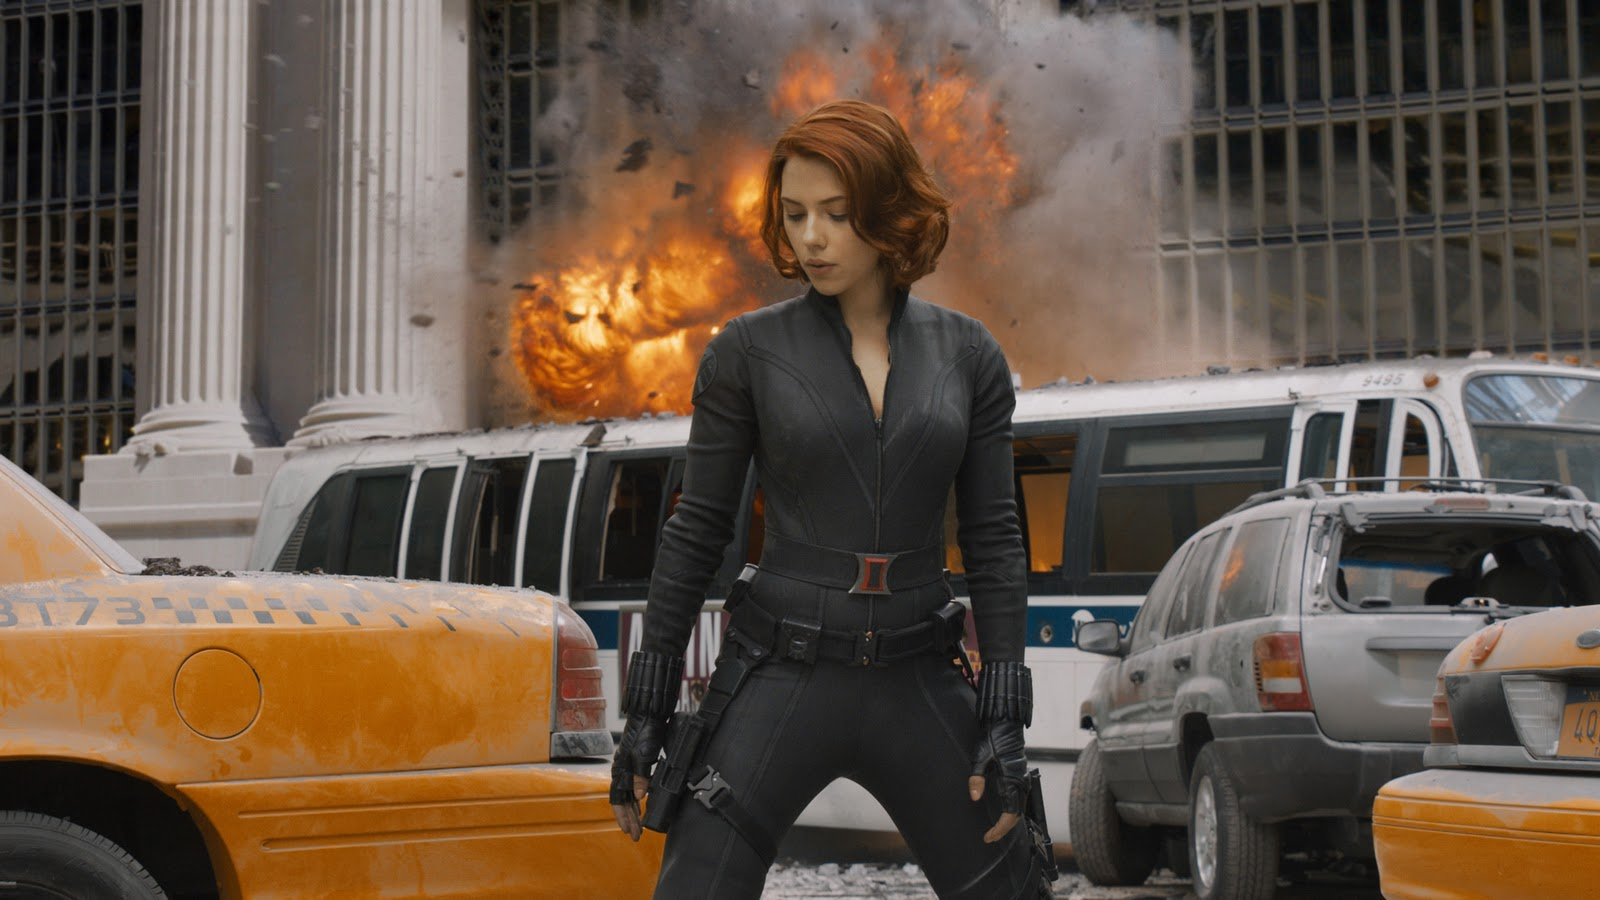 natasha romanoff black widow wallpapers - Natasha Romanoff Black Widow Wallpapers HD Wallpapers